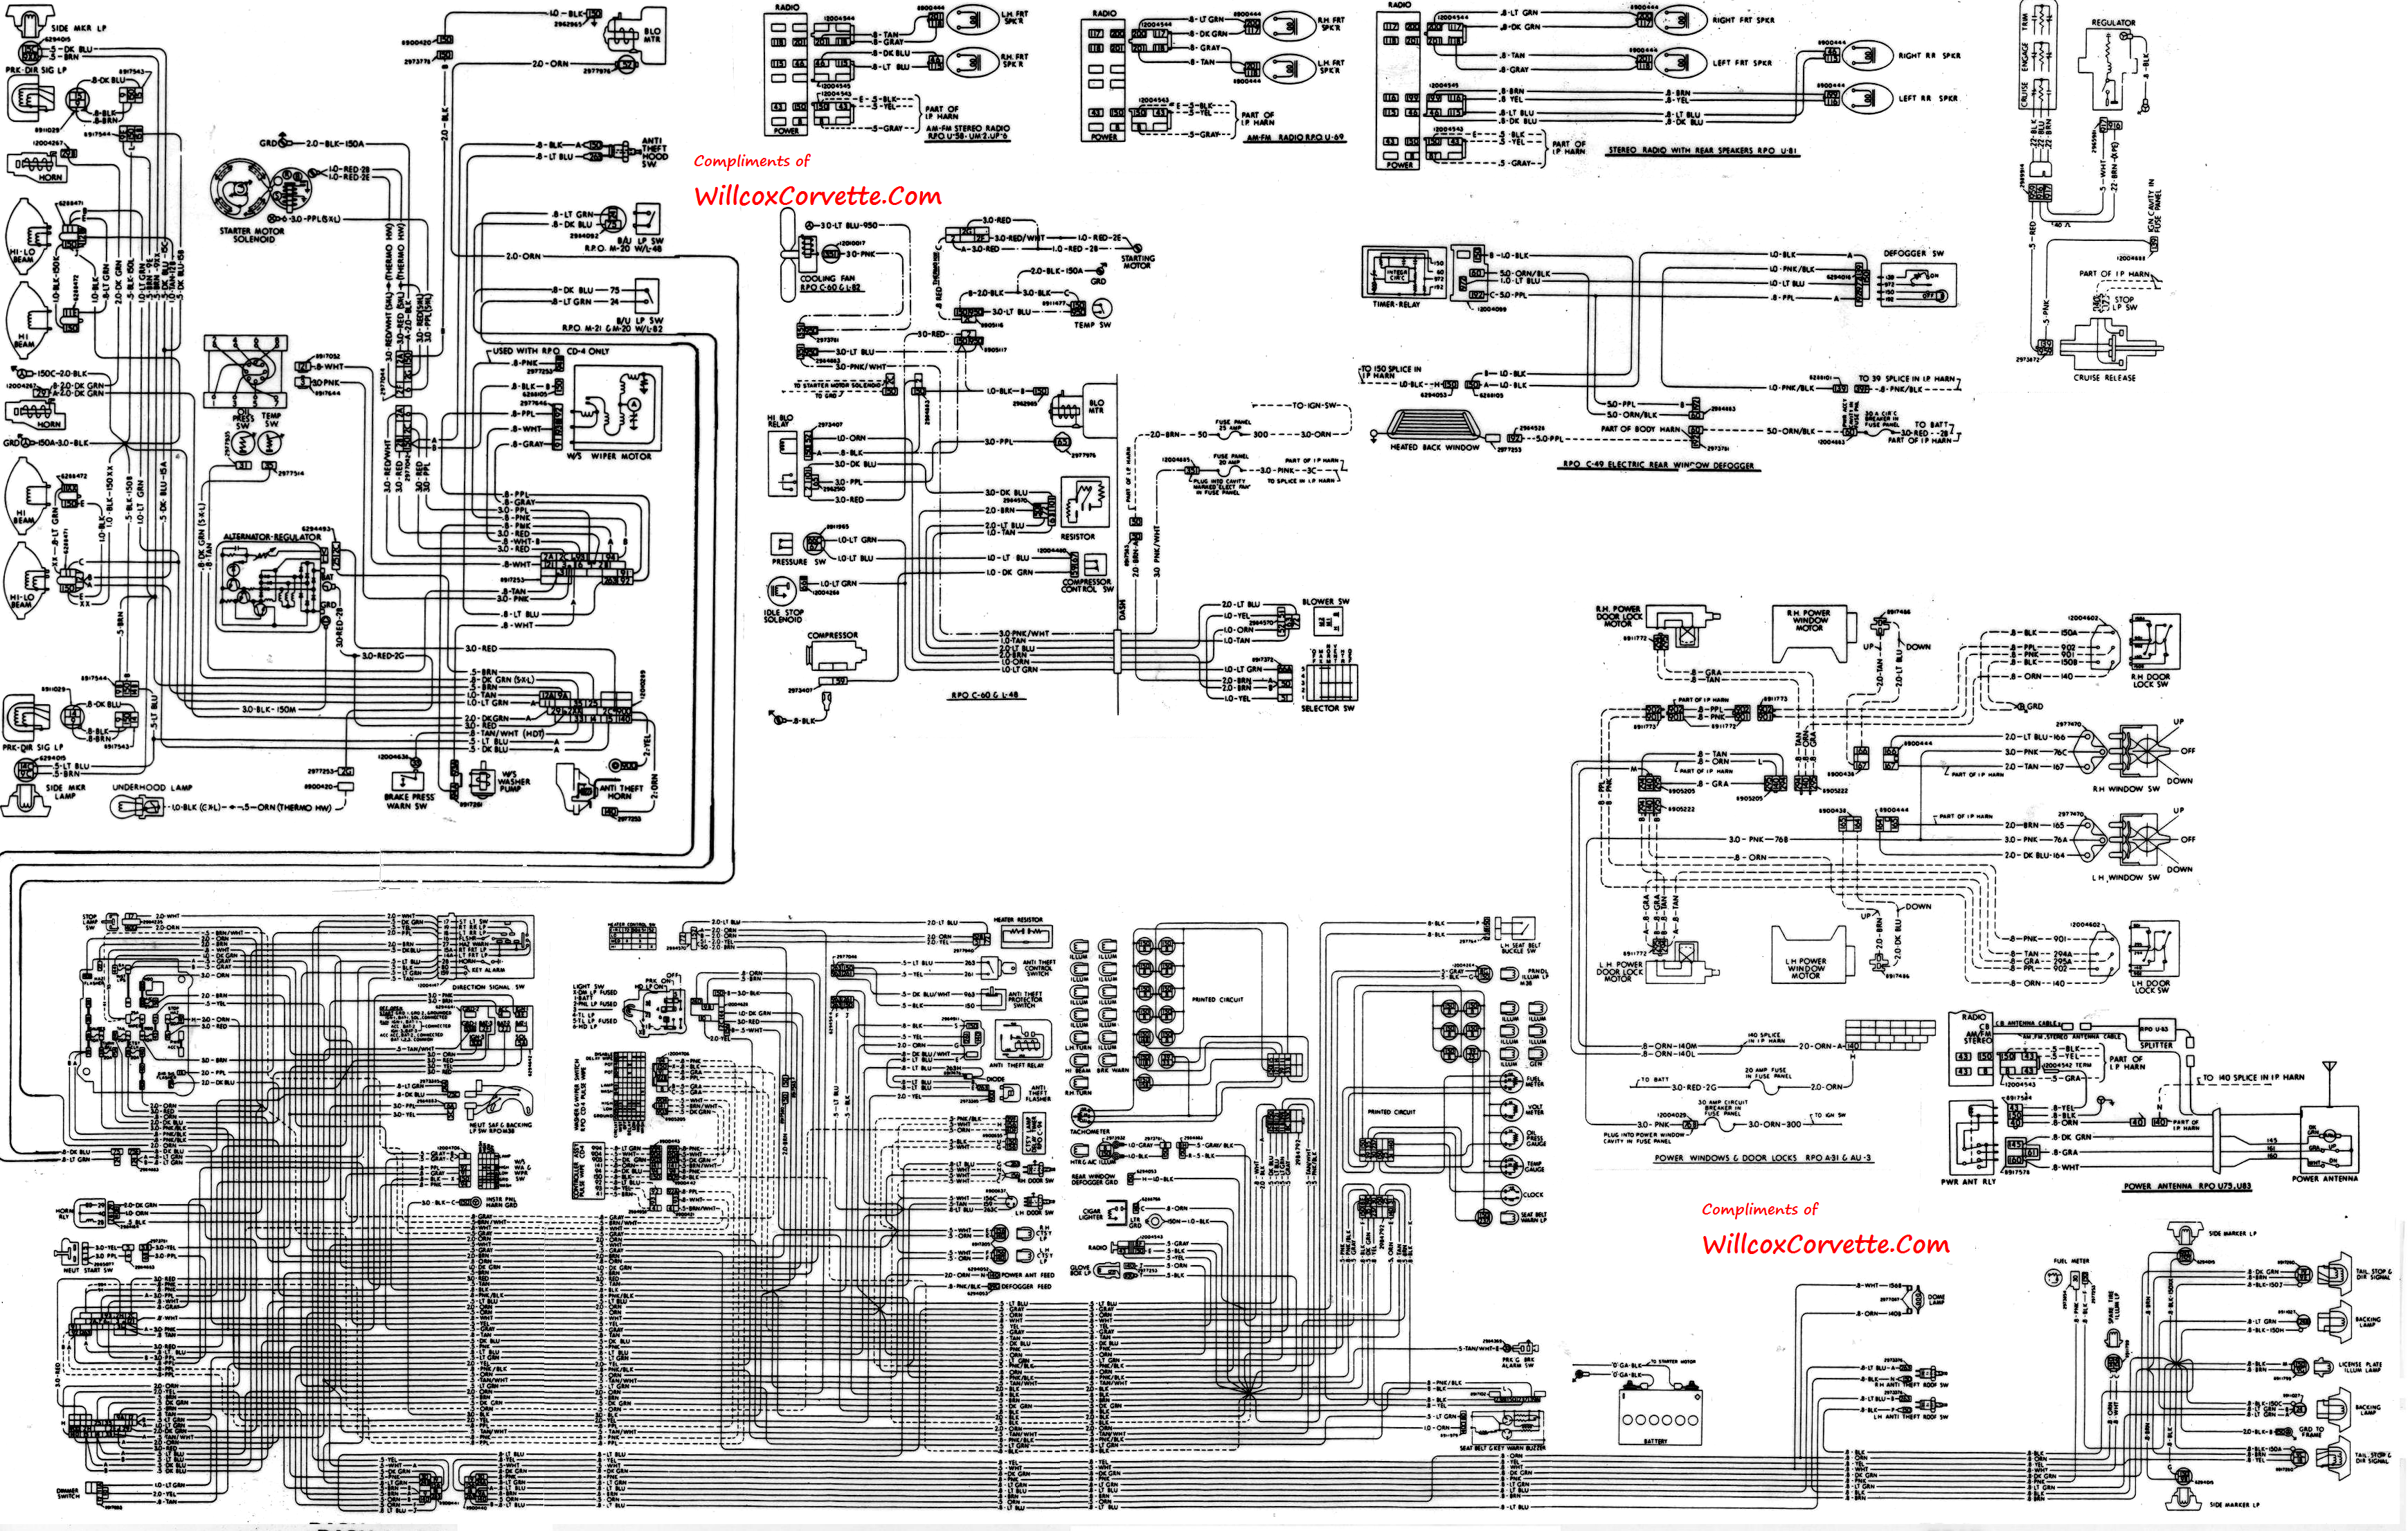 1979 wire diagram 1979 corvette wiring diagram aux fan wiring diagram 1979 corvette 1979 Corvette Fuse Box Diagram at gsmportal.co